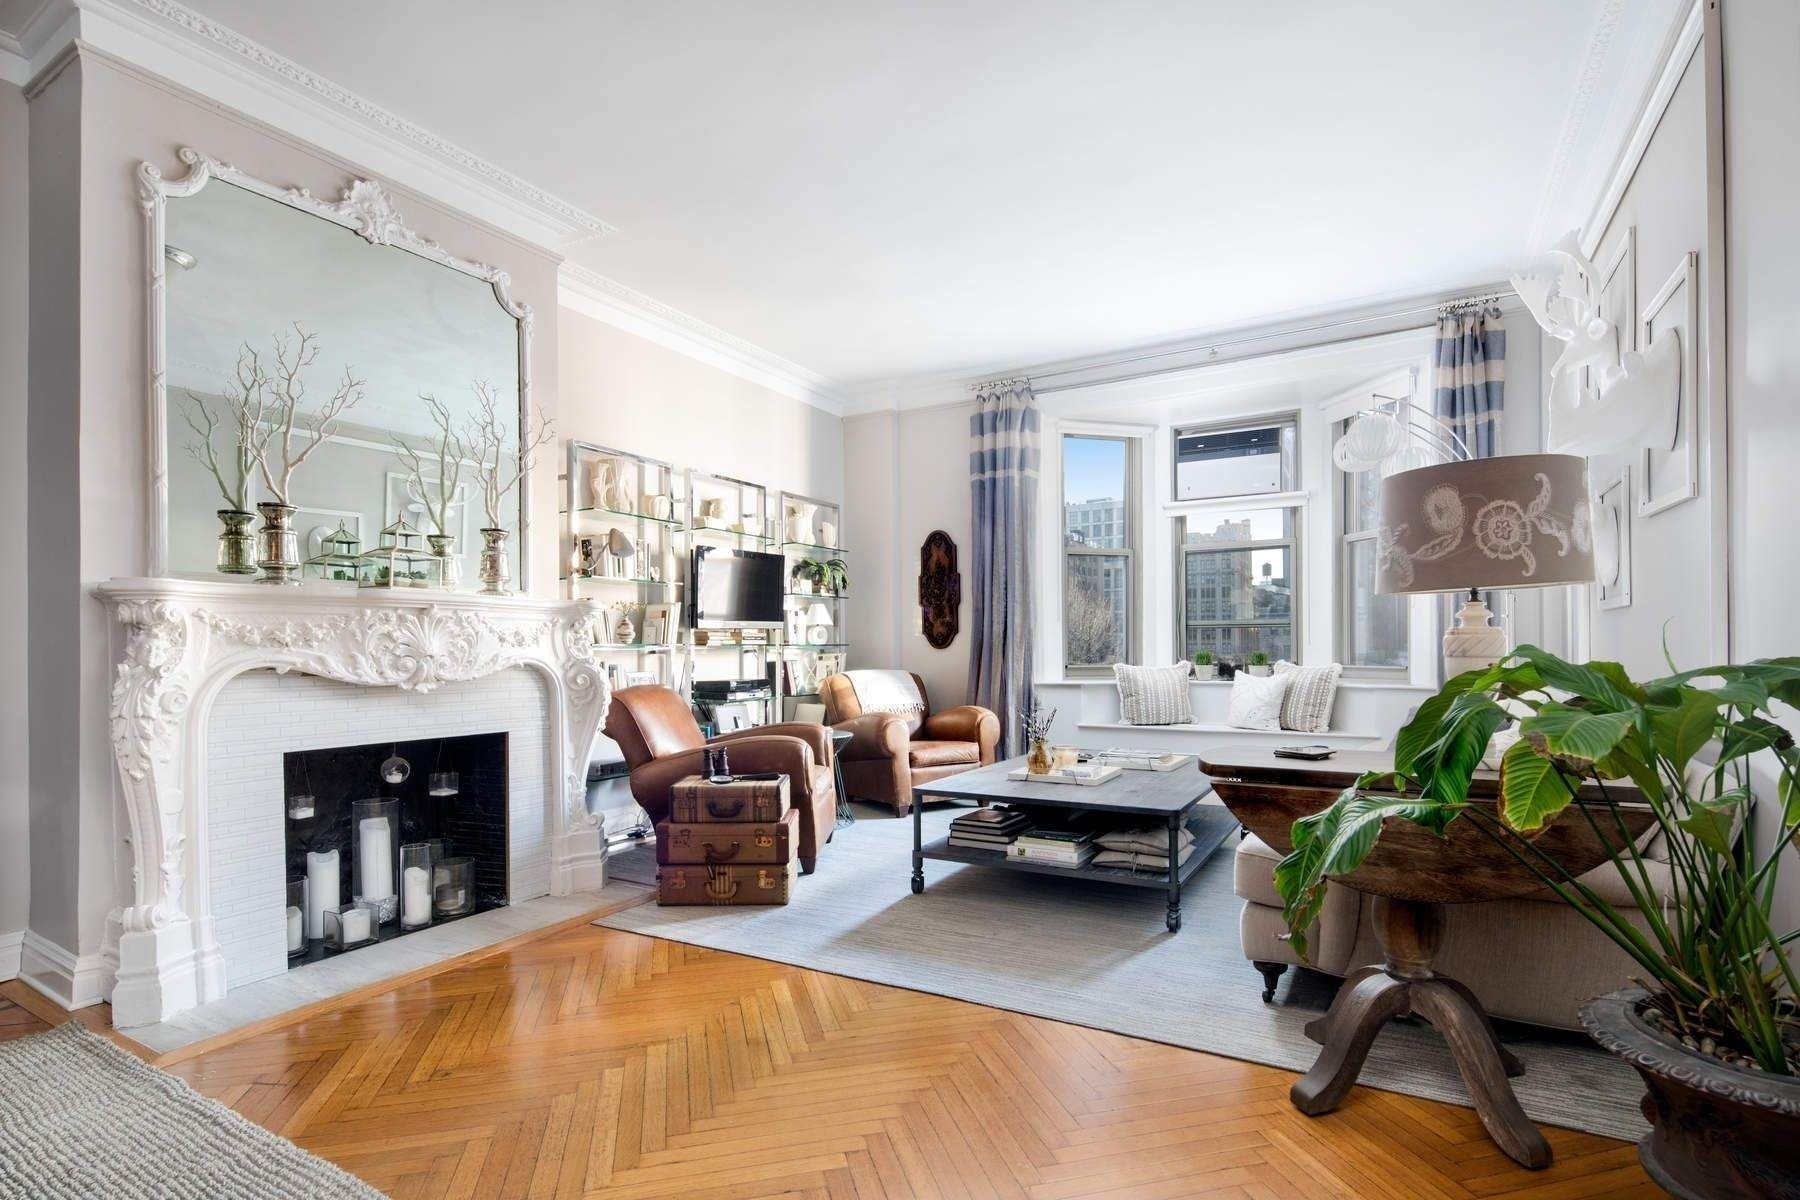 1. Condominiums for Sale at 36 Gramercy Park East, 7W Gramercy Park, New York, NY 10003